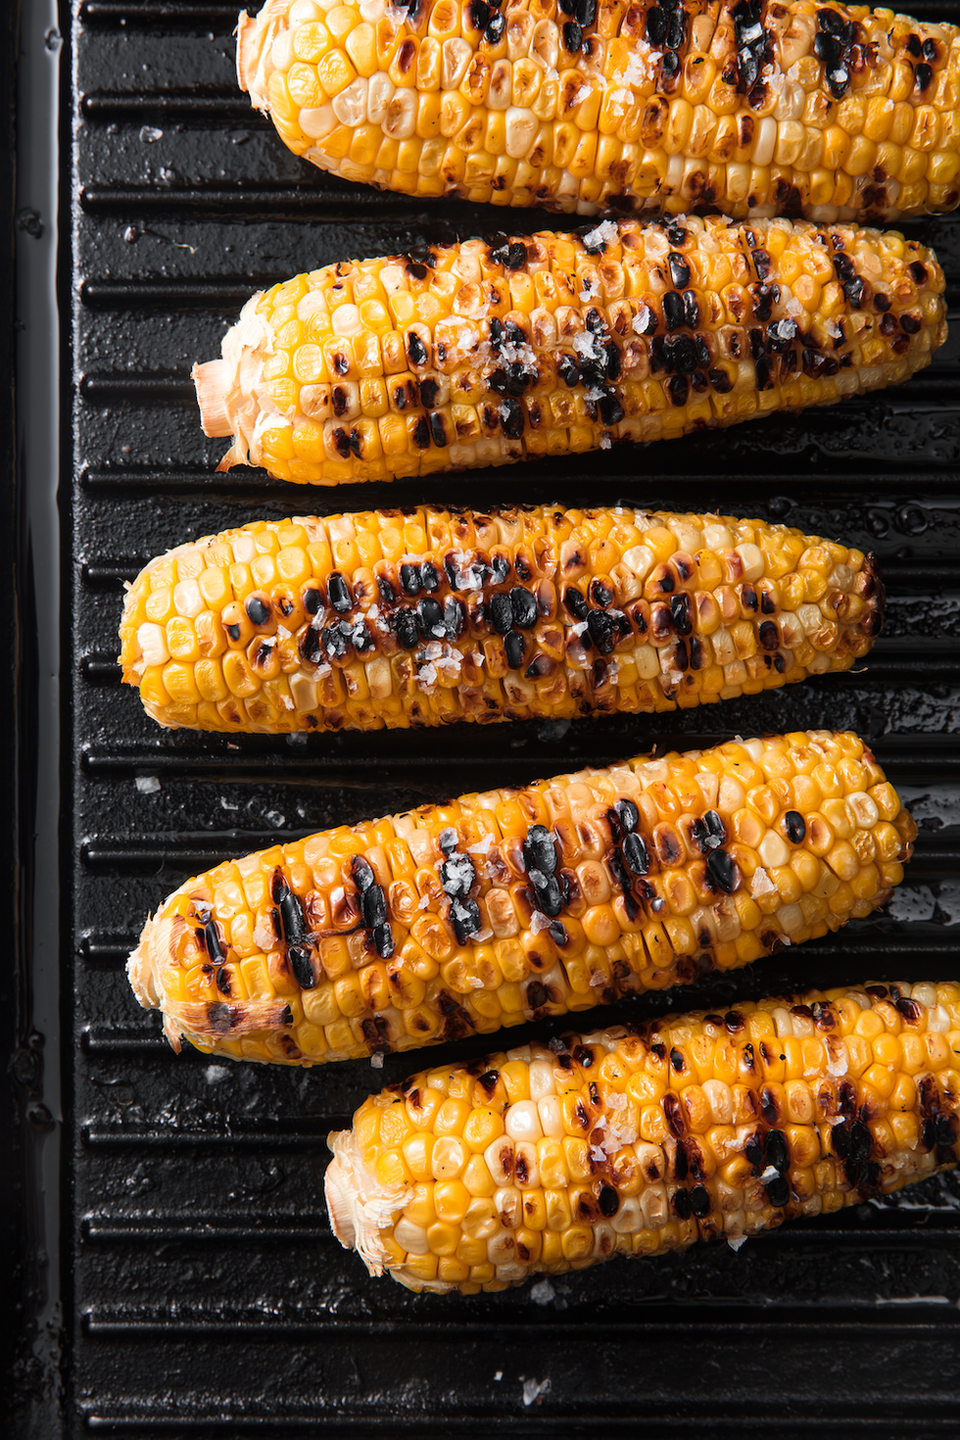 "<p>When the weather gets warm, grilled corn on the cob is basically mandatory. Sweet and crunchy with a bit of smokey char, so juicy it runs down your chin—what could be better? </p><p>Get the <a href=""https://www.delish.com/uk/cooking/recipes/a30712393/best-grilled-corn-on-the-cob-recipe/"" rel=""nofollow noopener"" target=""_blank"" data-ylk=""slk:Grilled Corn On The Cob"" class=""link rapid-noclick-resp"">Grilled Corn On The Cob</a> recipe. </p>"